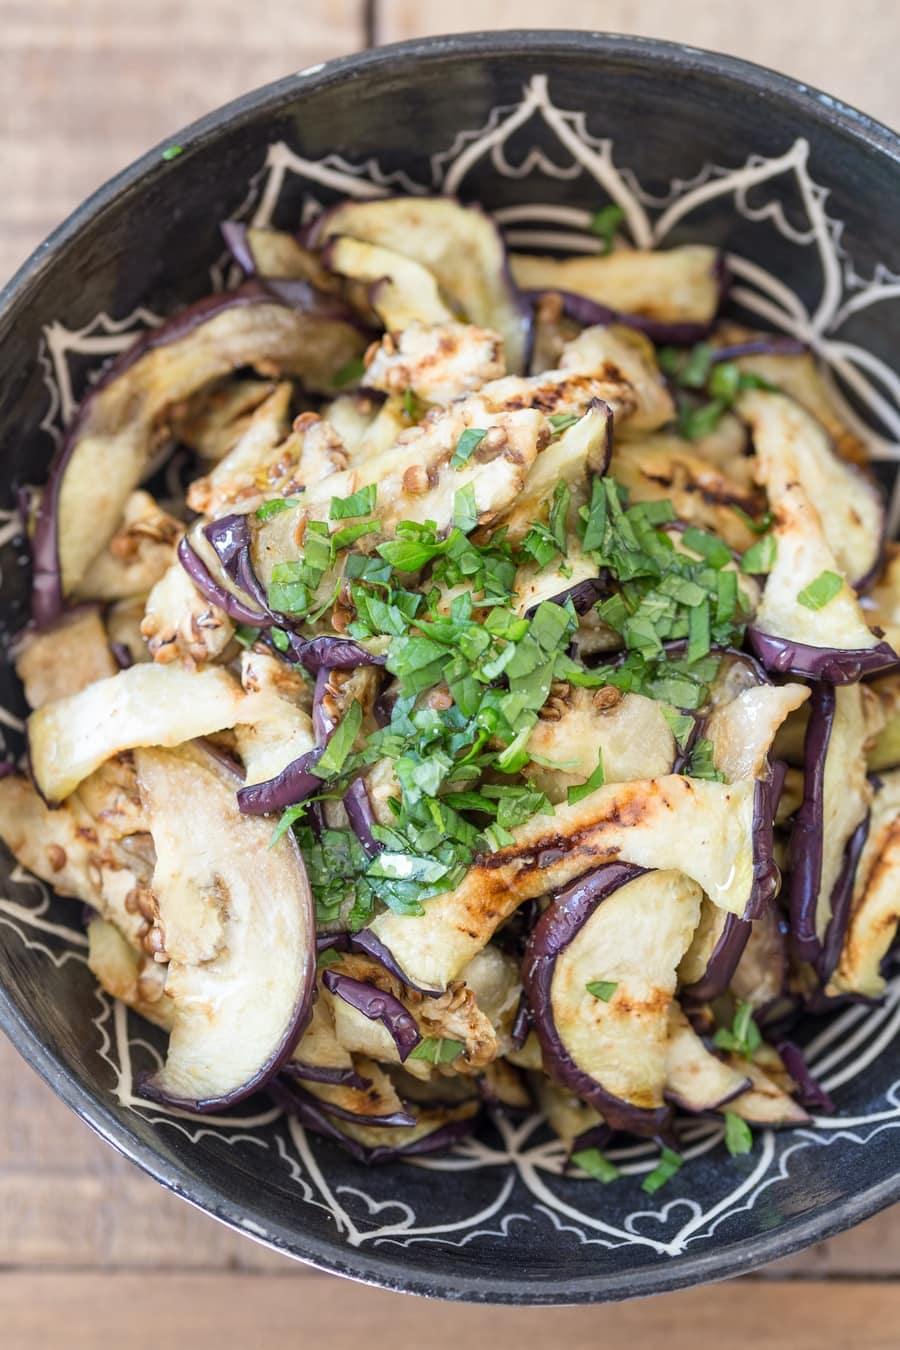 Grilled eggplant salad with olive oil and fresh mint.